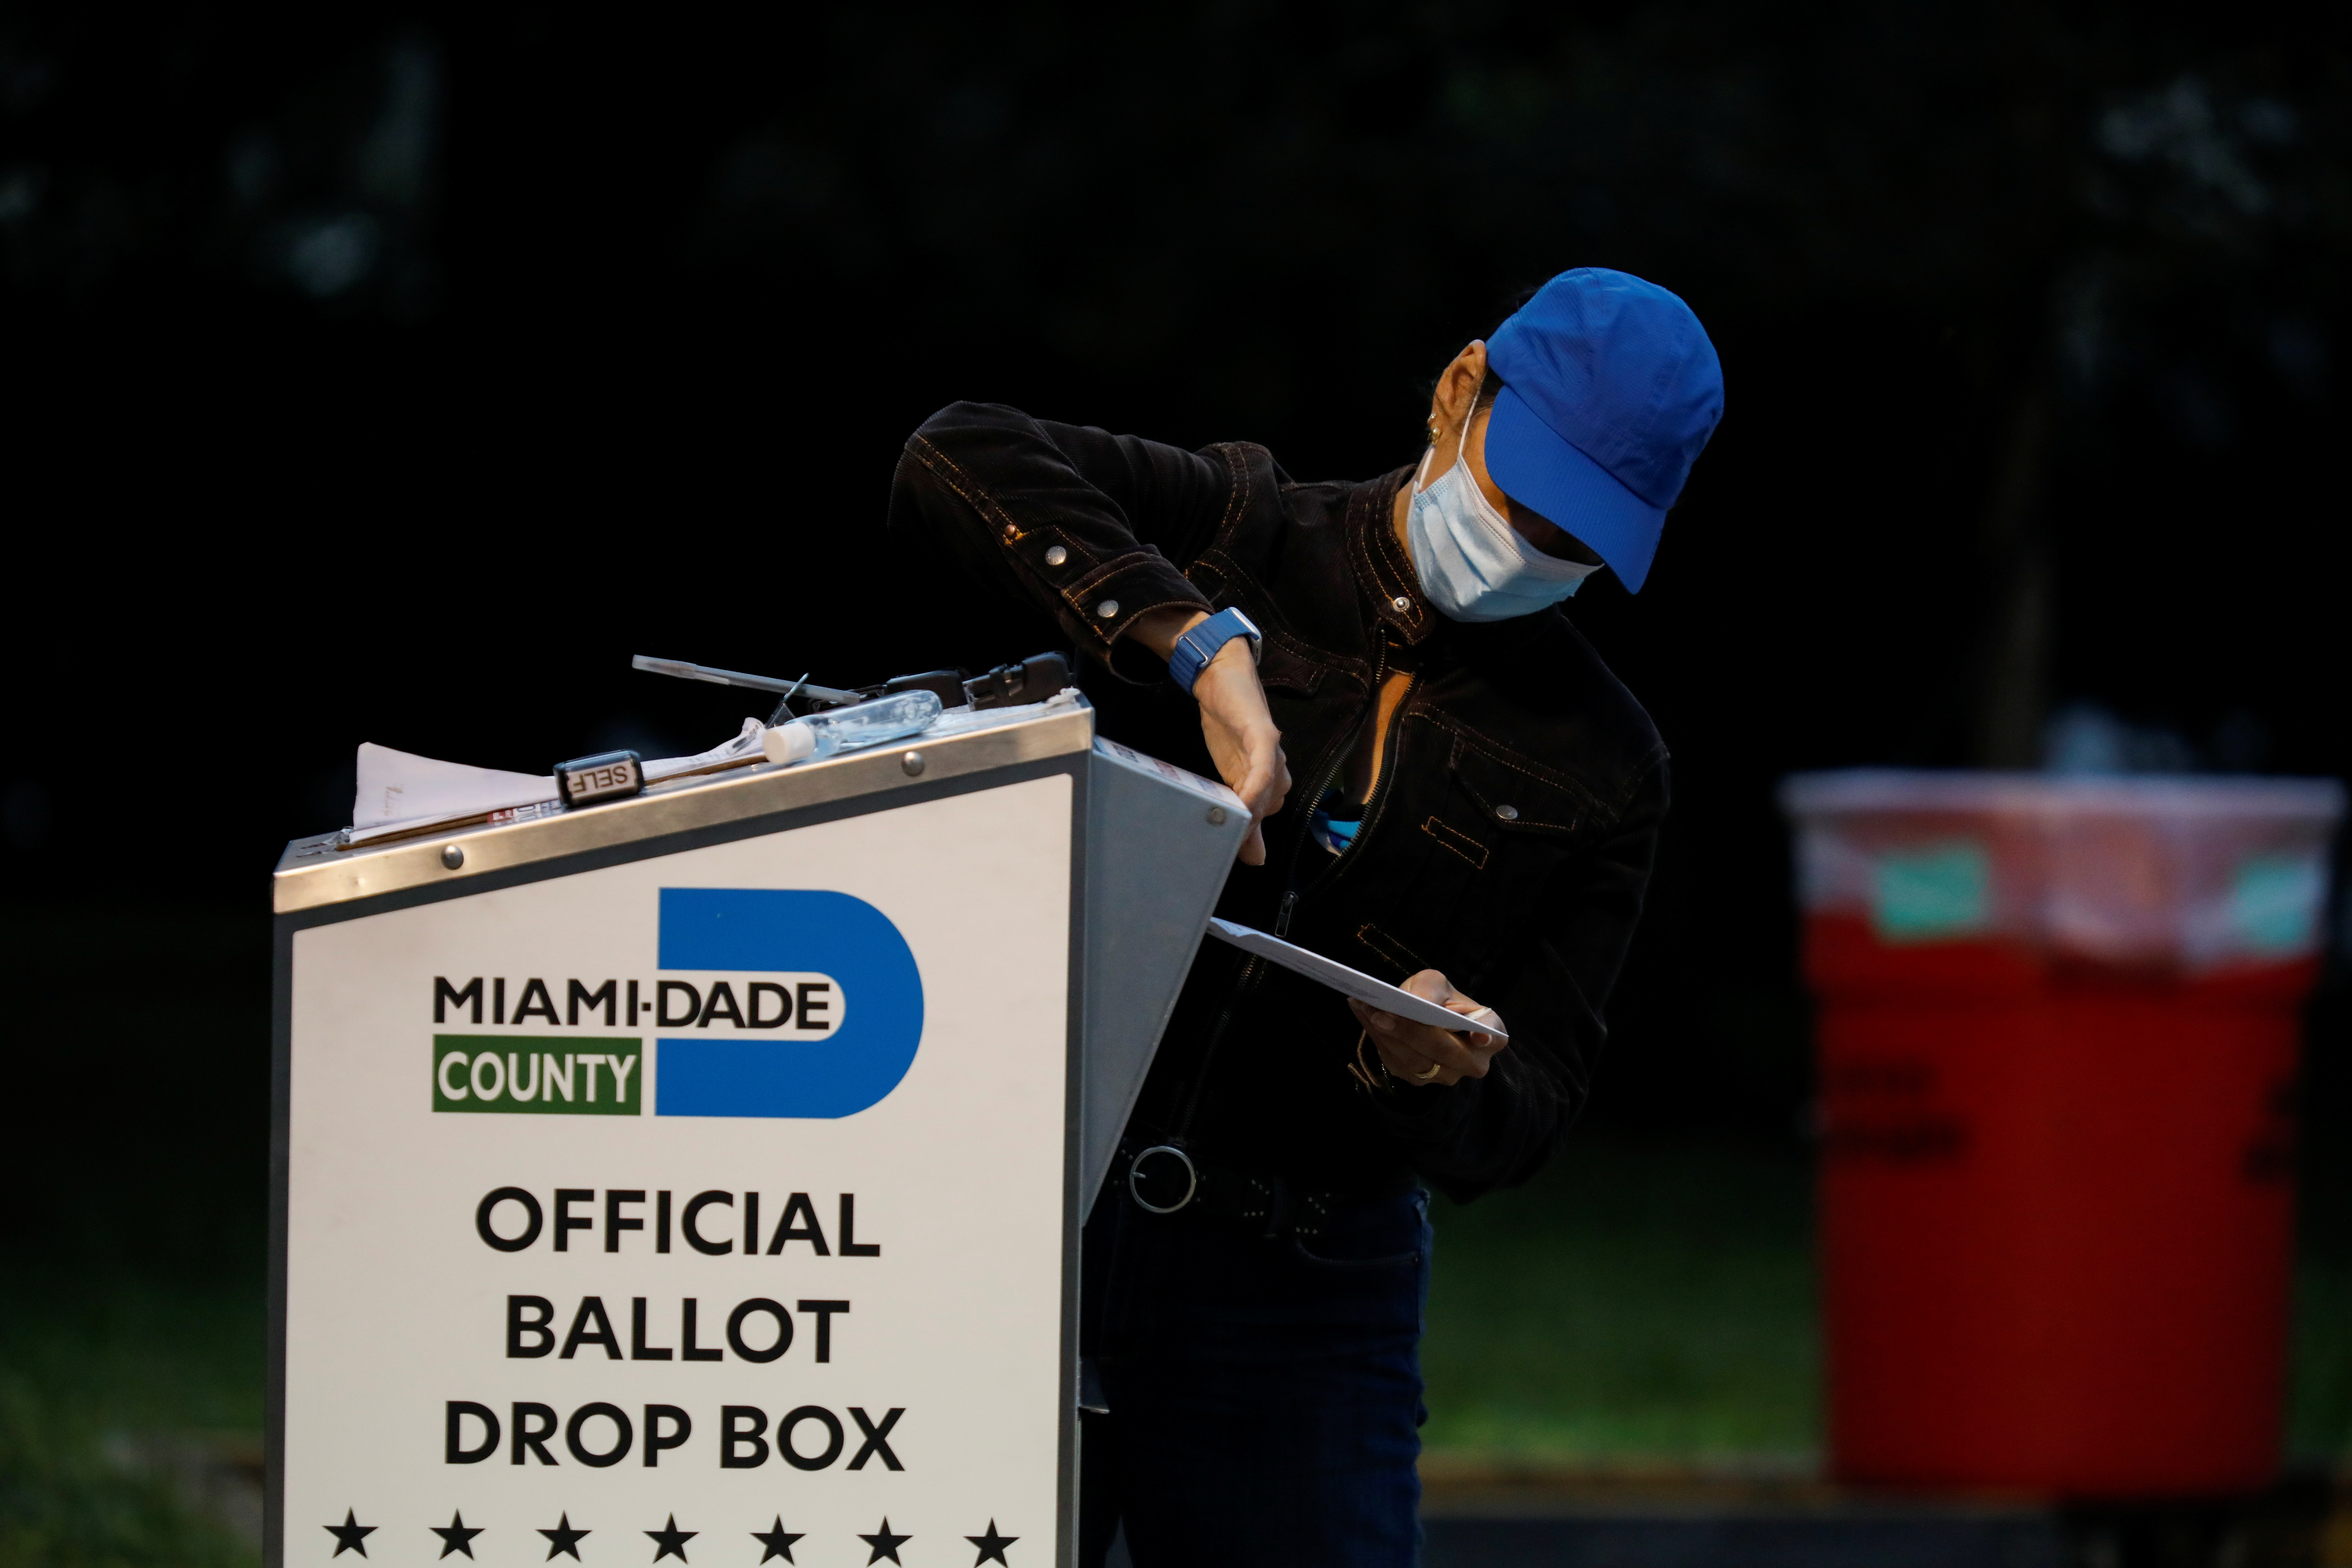 A poll worker casts a mail-in ballot for a voter at a drive-thru polling station at Miami-Dade County Elections Department during the 2020 presidential election in Miami, Florida, U.S., November 3, 2020. REUTERS/Marco Bello - RC20WJ946HIN